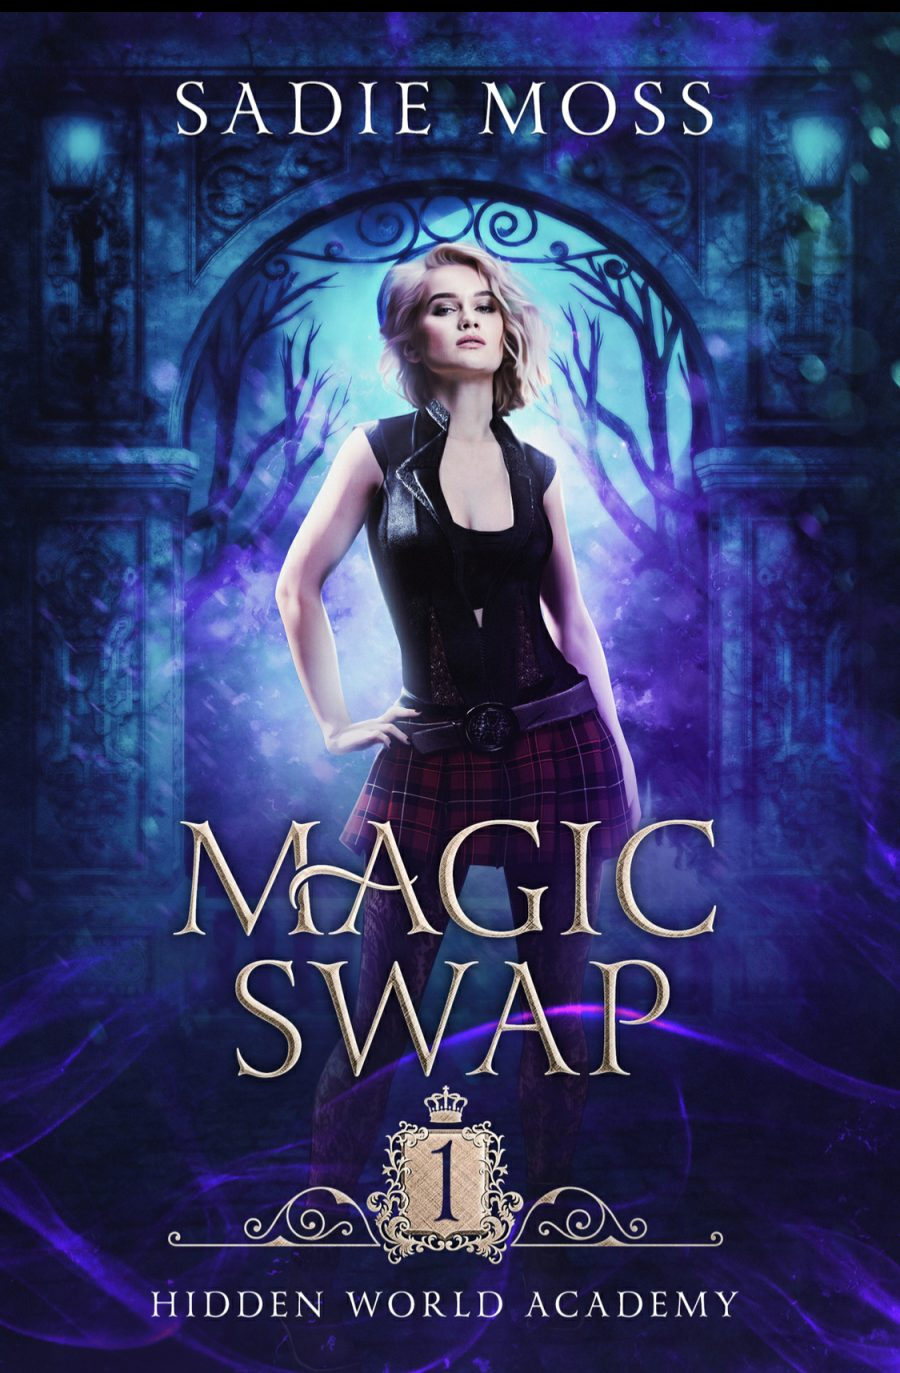 Magic Swap by Sadie Moss - A Book Review #BookReview #FastBurn #PNR #RH #SeriesComplete #KindleUnlimited #KU #Hot